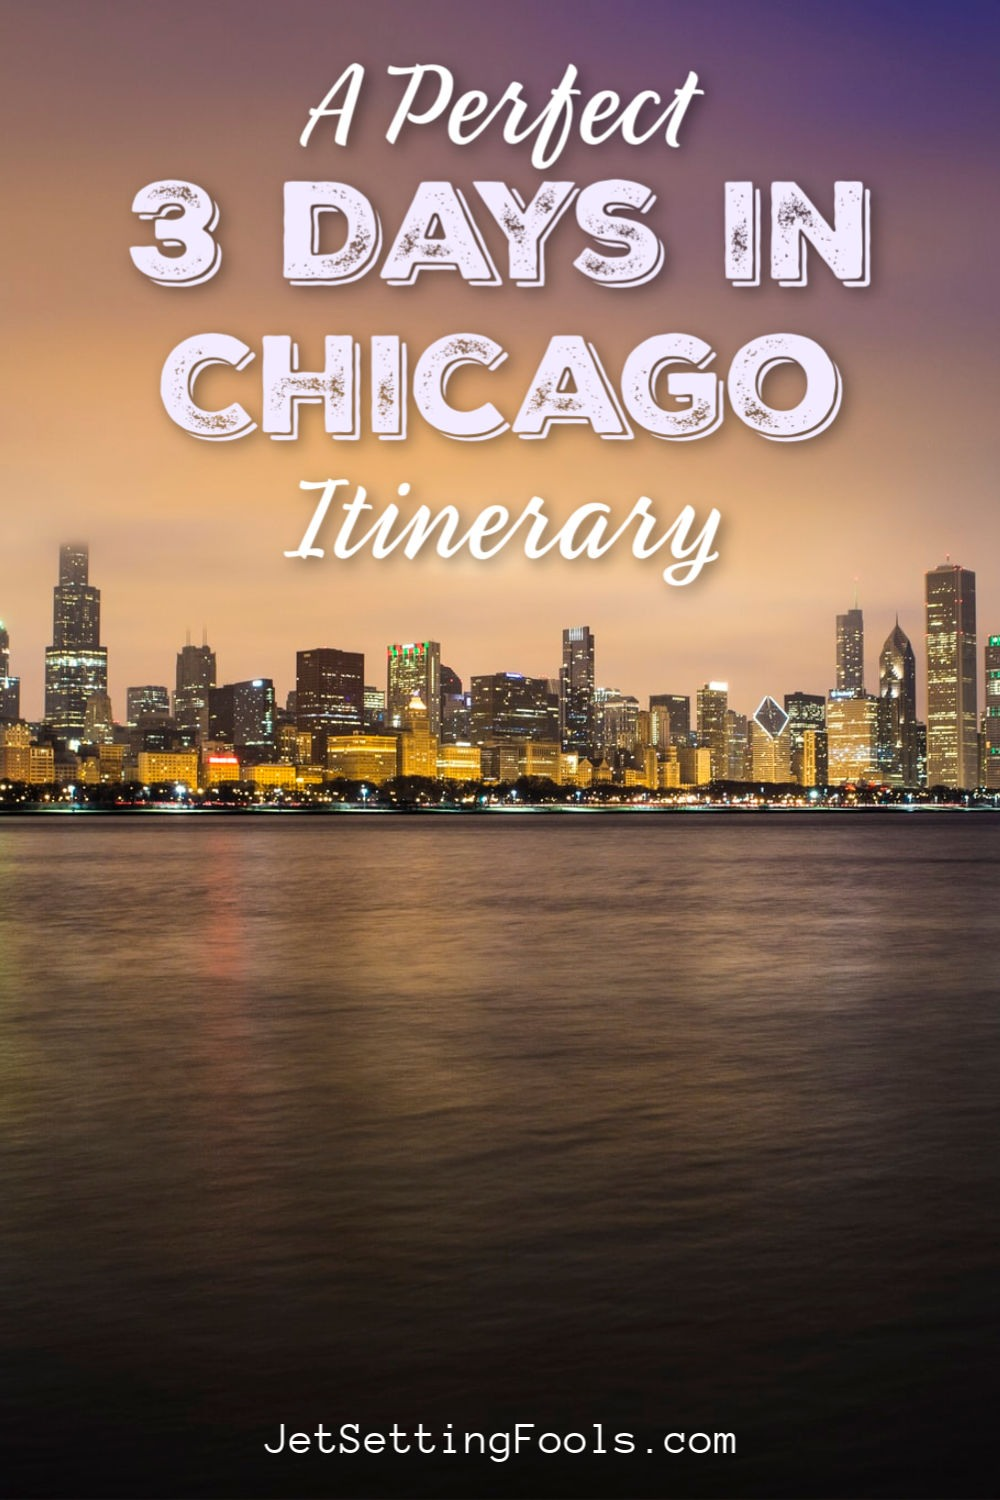 Chicago Itinerary by JetSettingFools.com